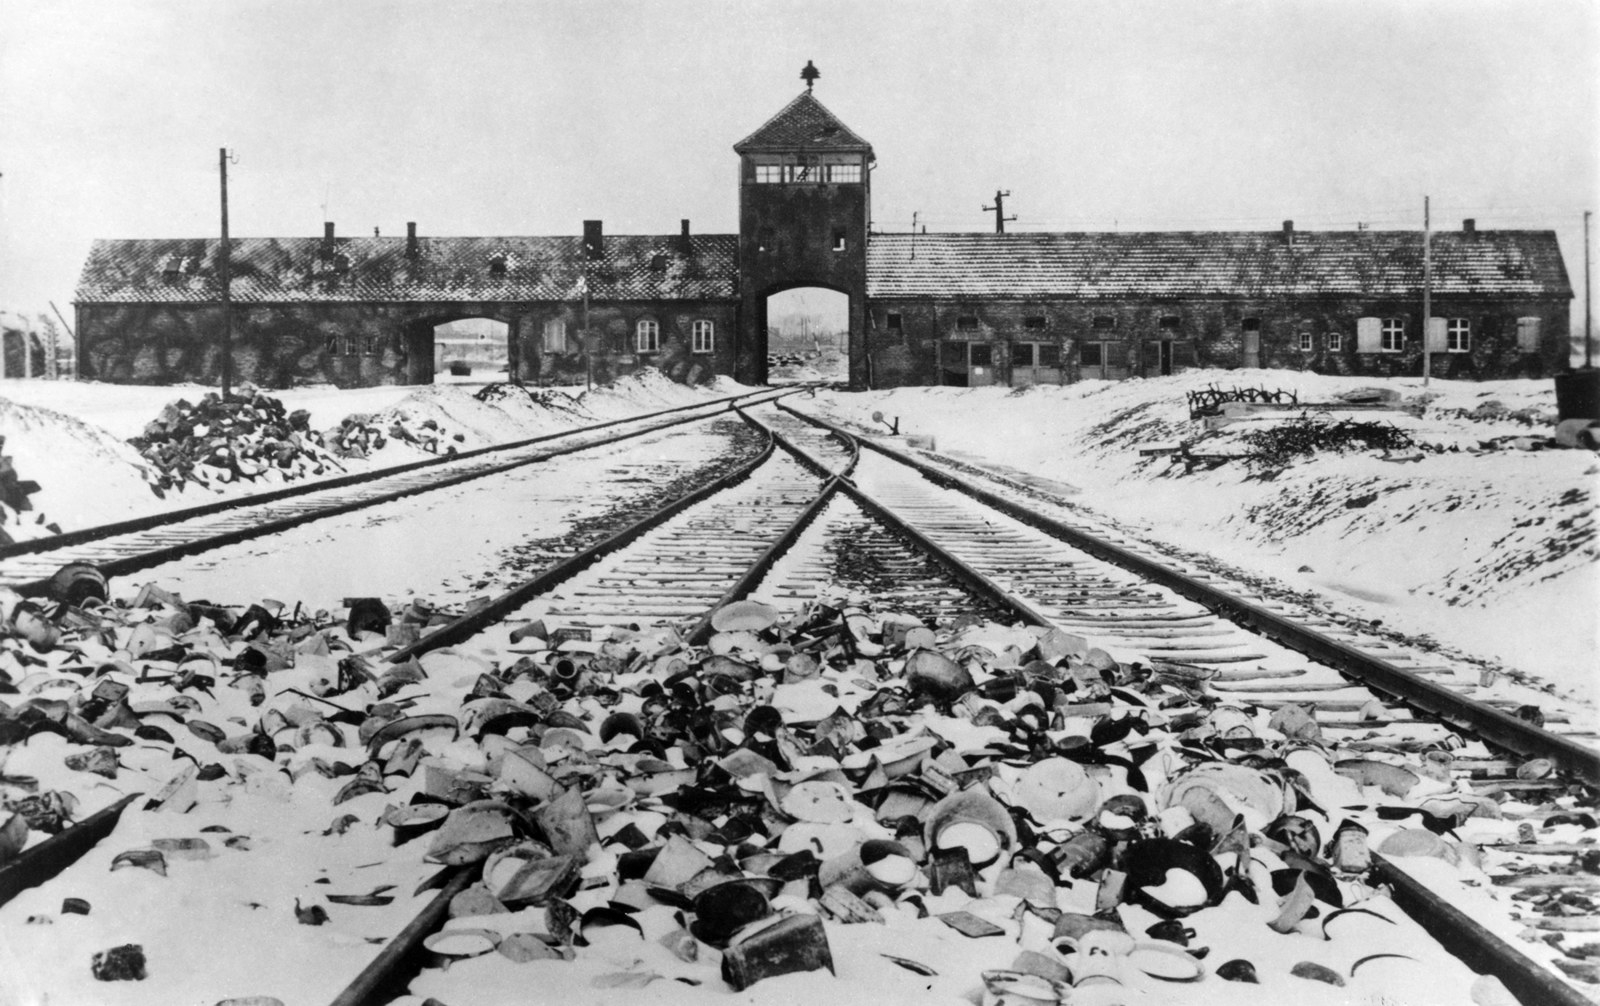 These Pictures Show The Barbaric Inhumanity Of Auschwitz Concentration Camp